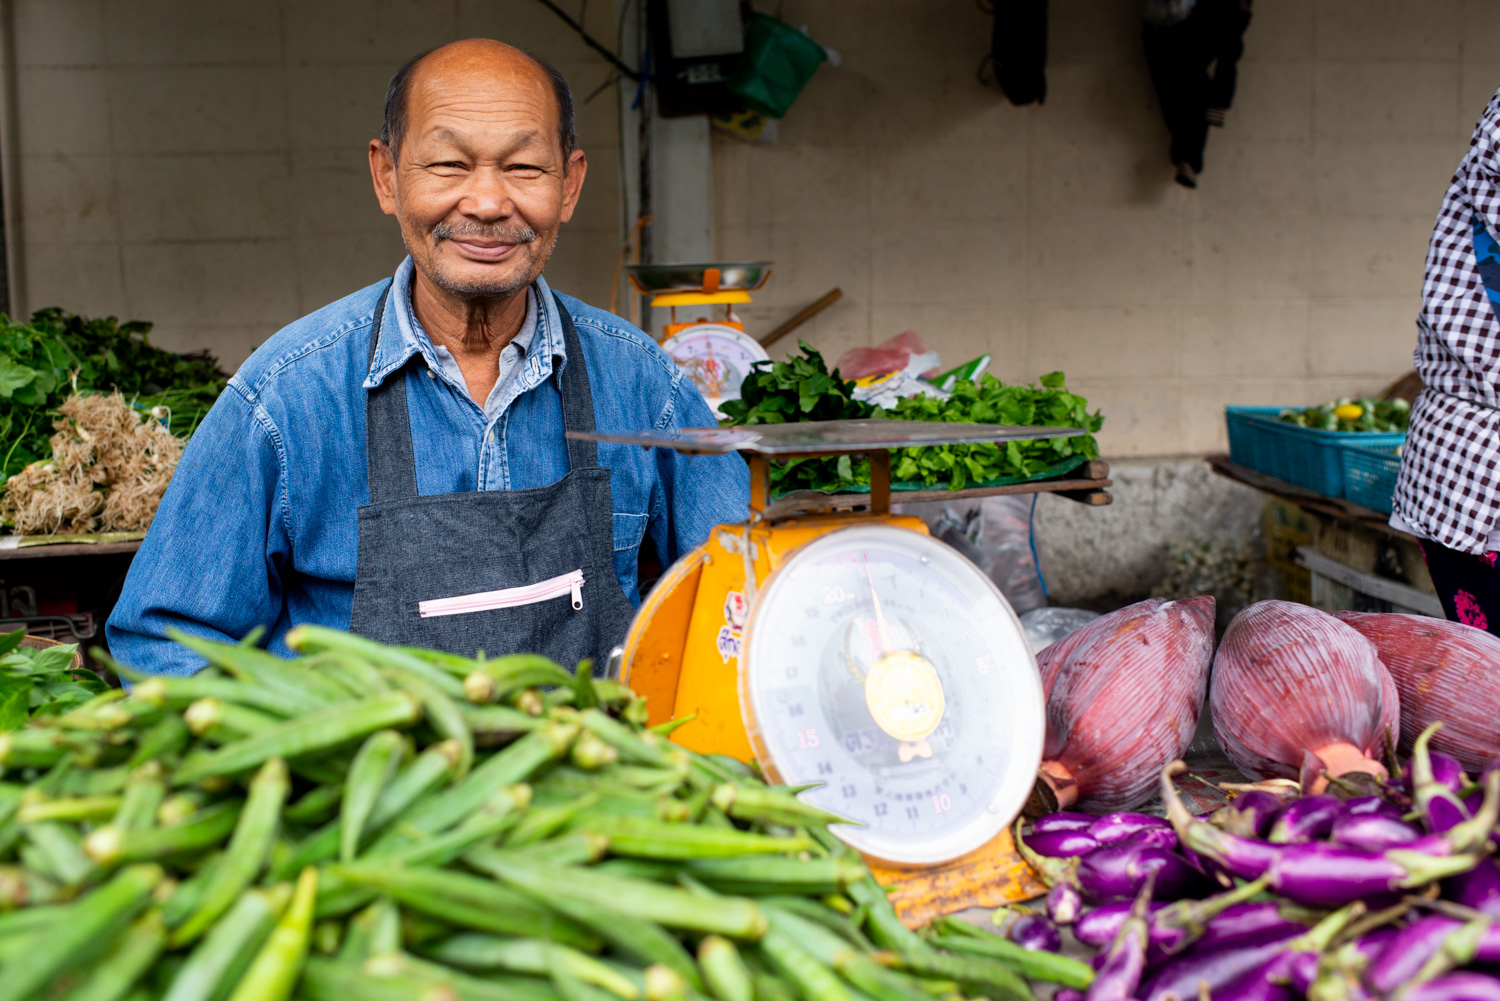 Vege Vendor 15 Common Portrait Mistakes to Avoid